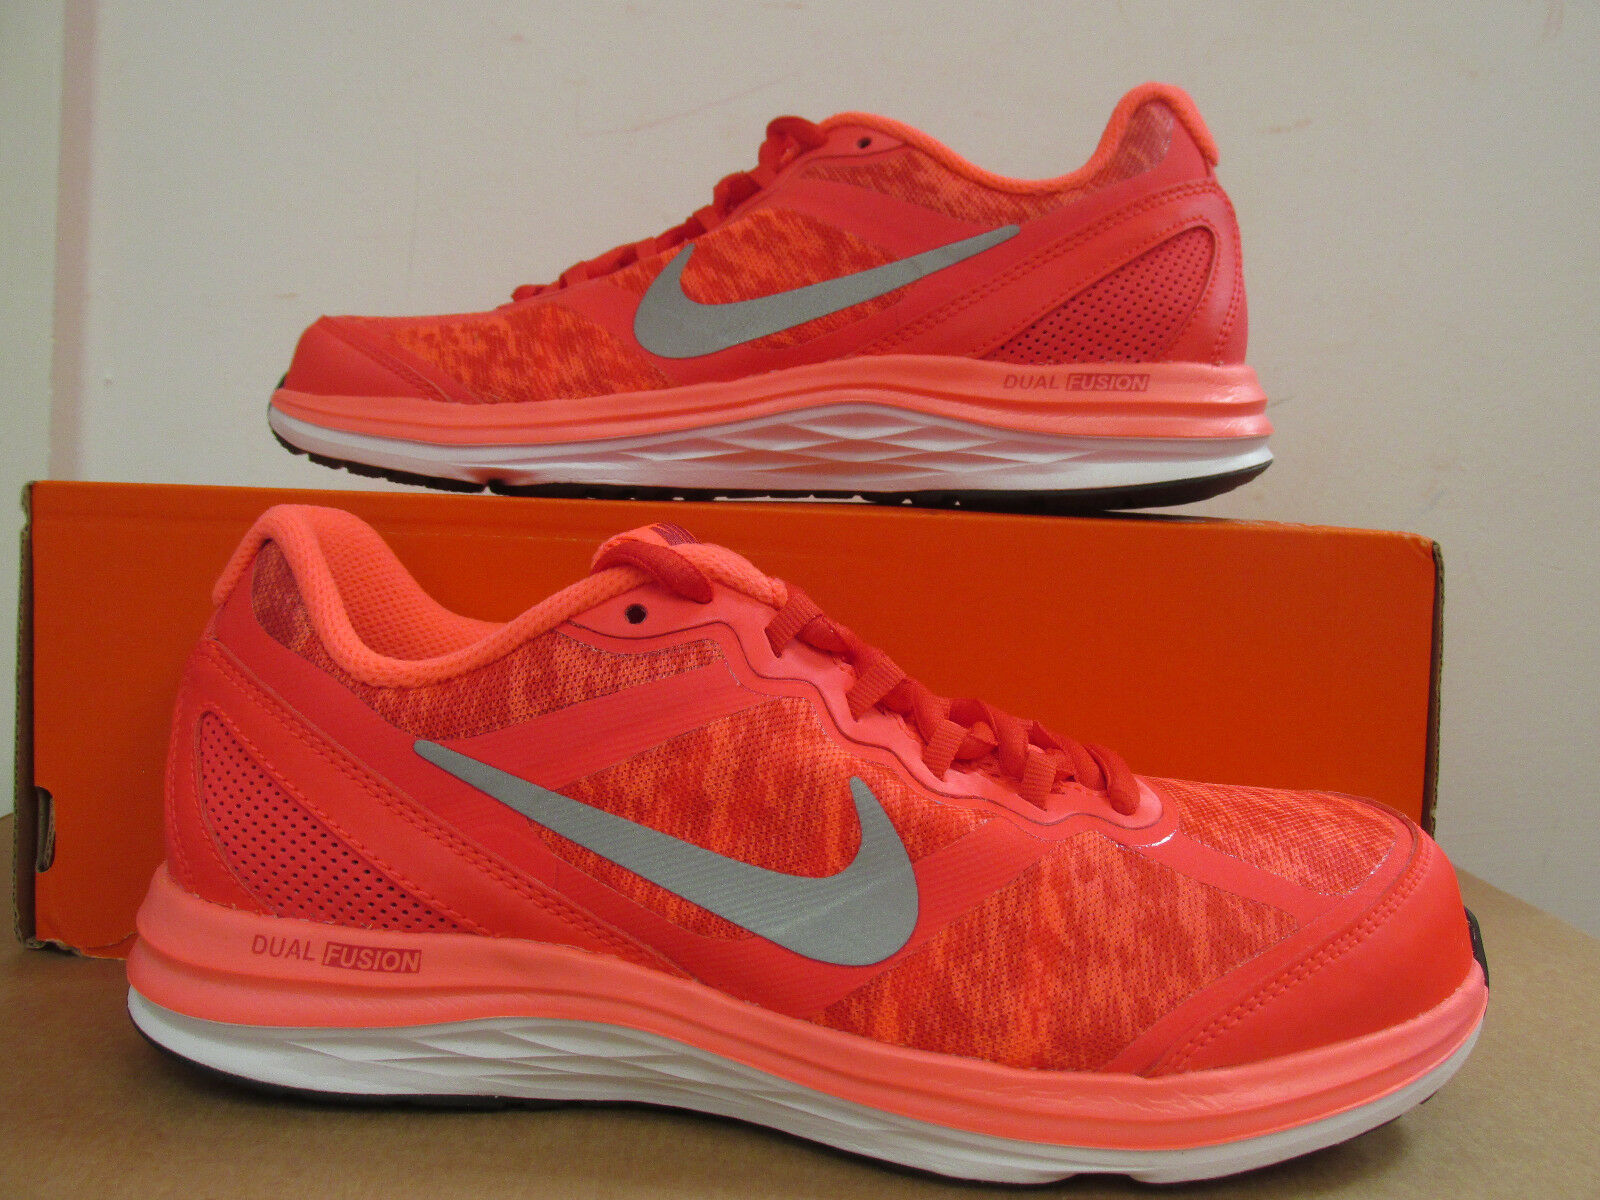 nike dual fusion run 3 flash Femme running trainers 685144 601 CLEARANCE